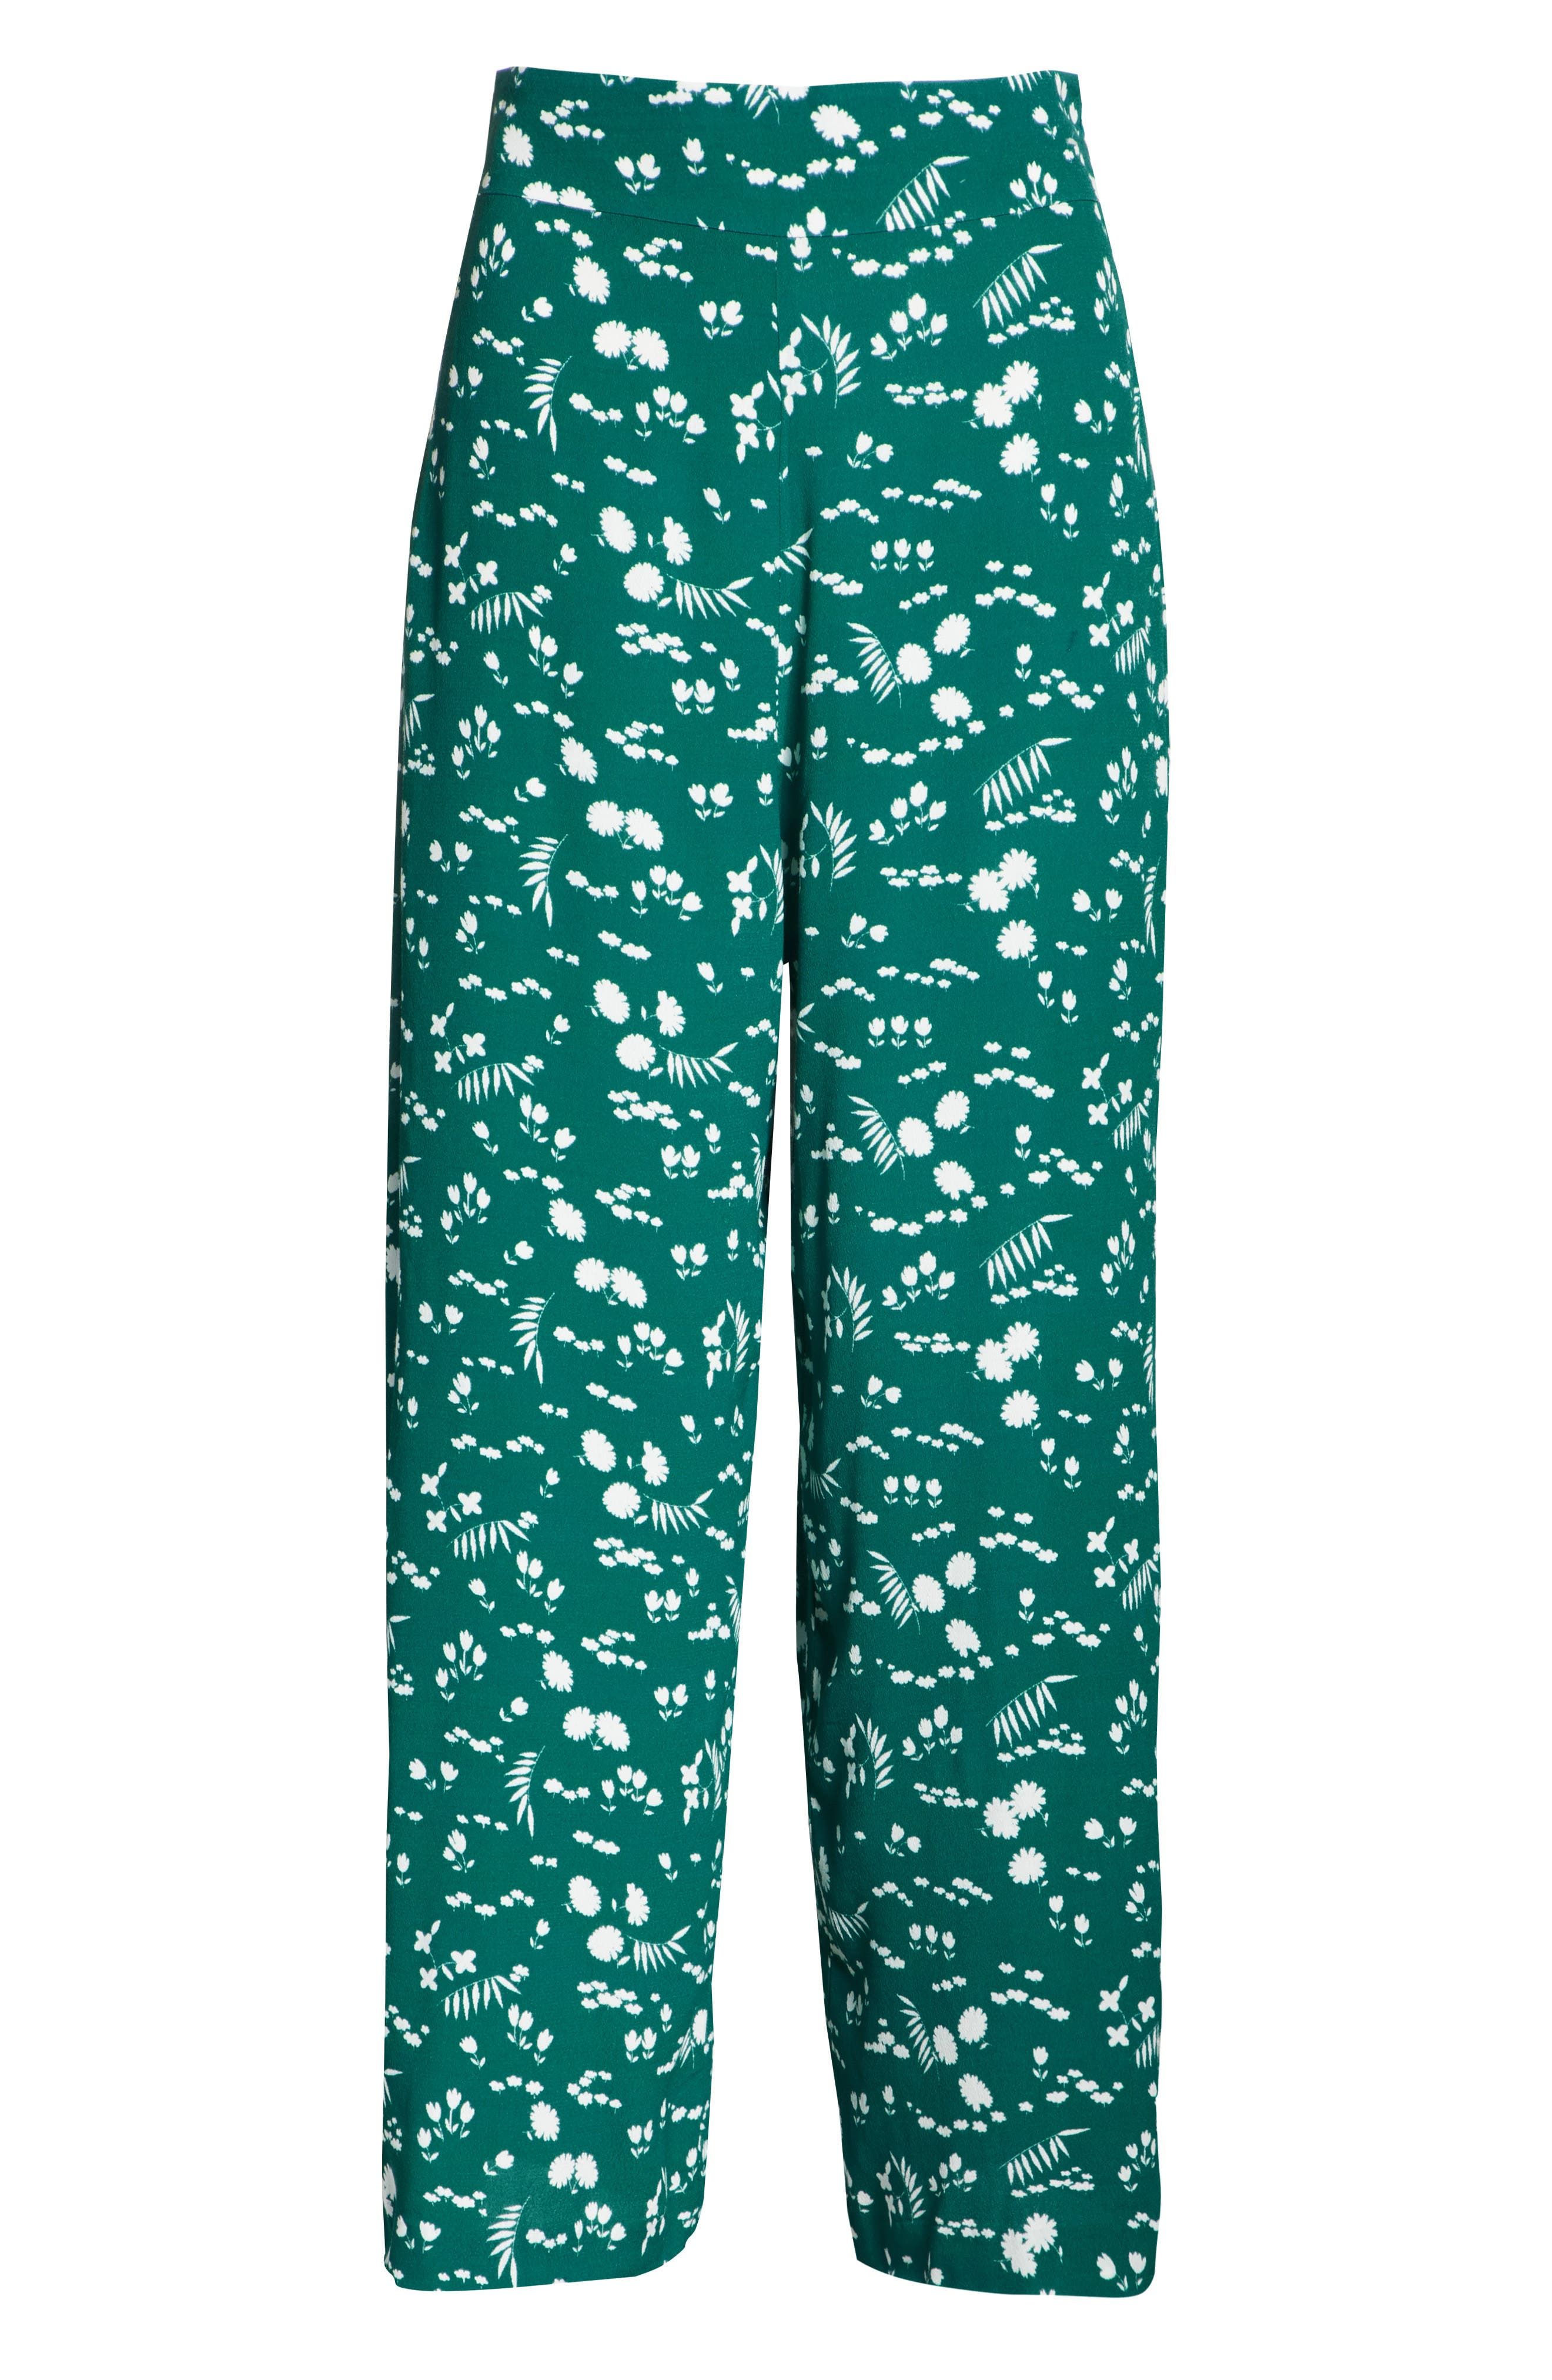 Floral Print Crop Pants,                             Alternate thumbnail 6, color,                             900